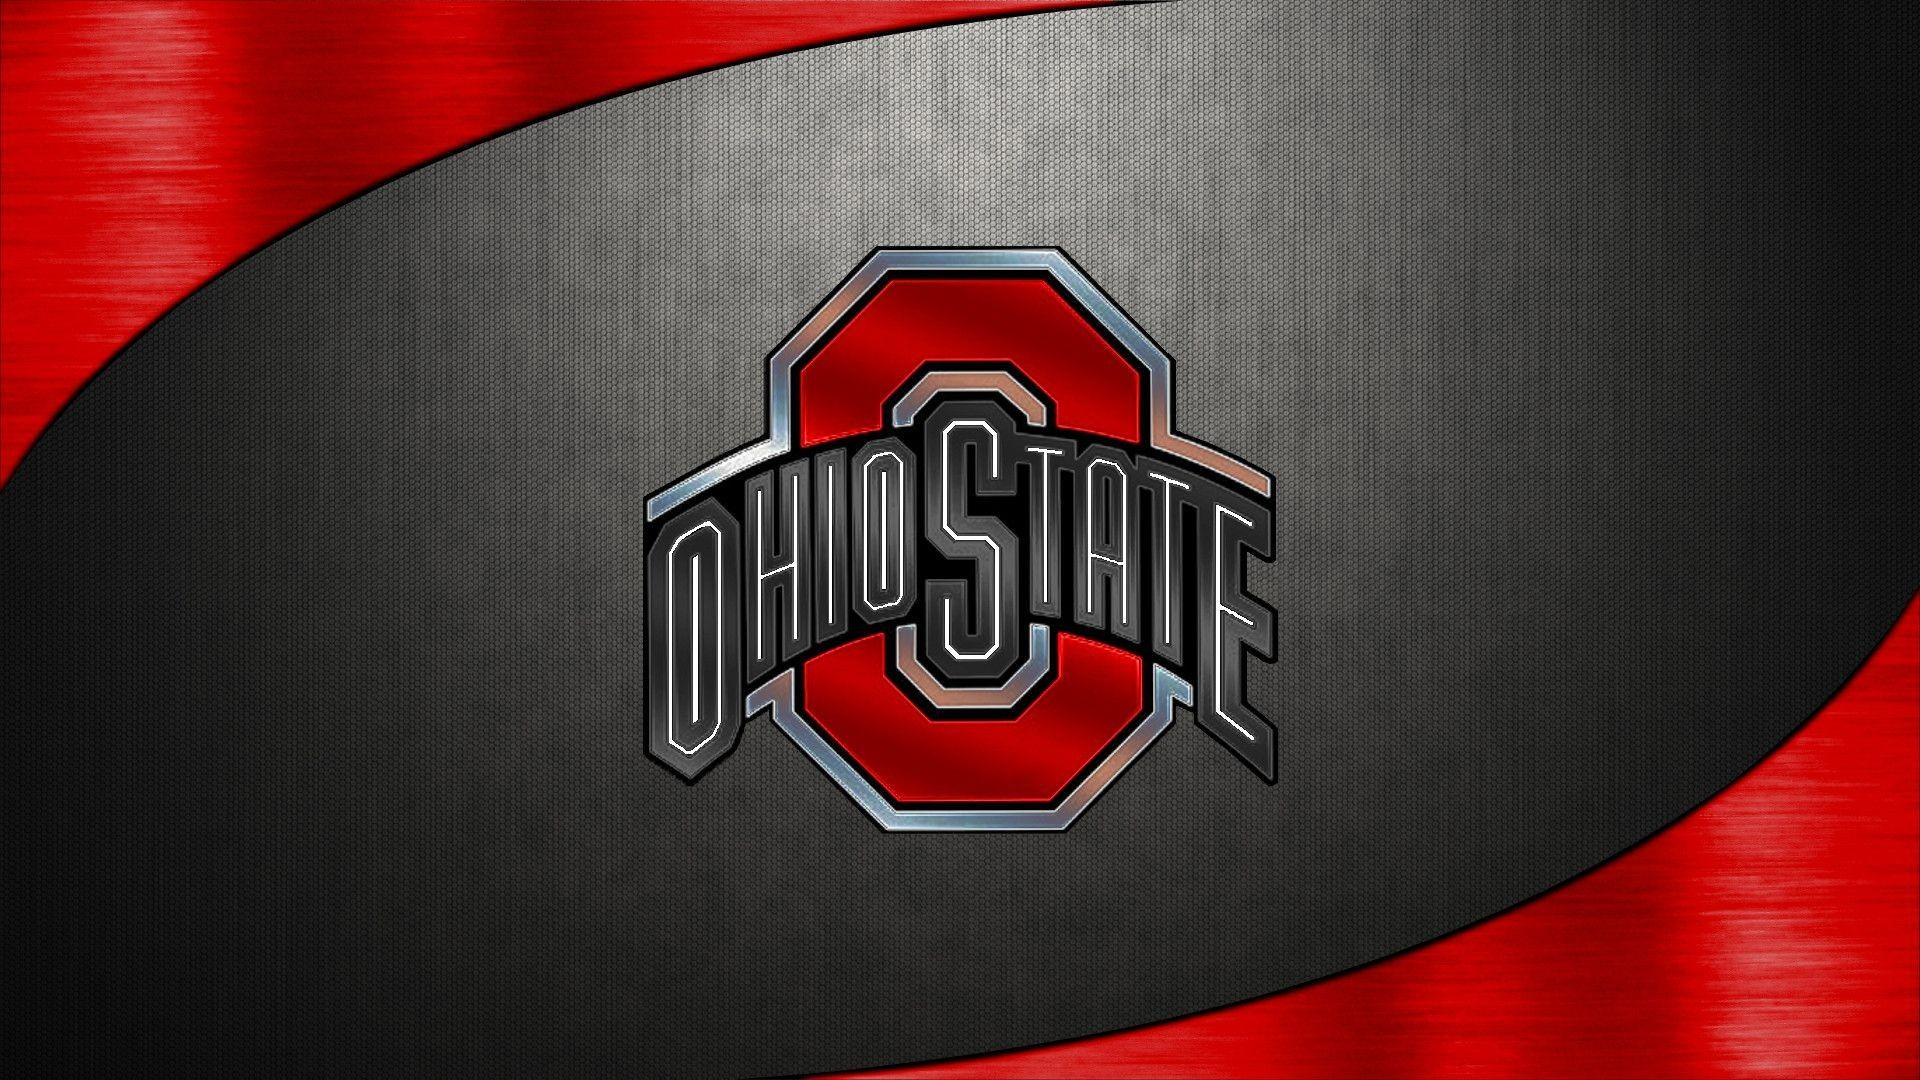 Celebrate The Game With Ohio State Michigan Wallpapers and